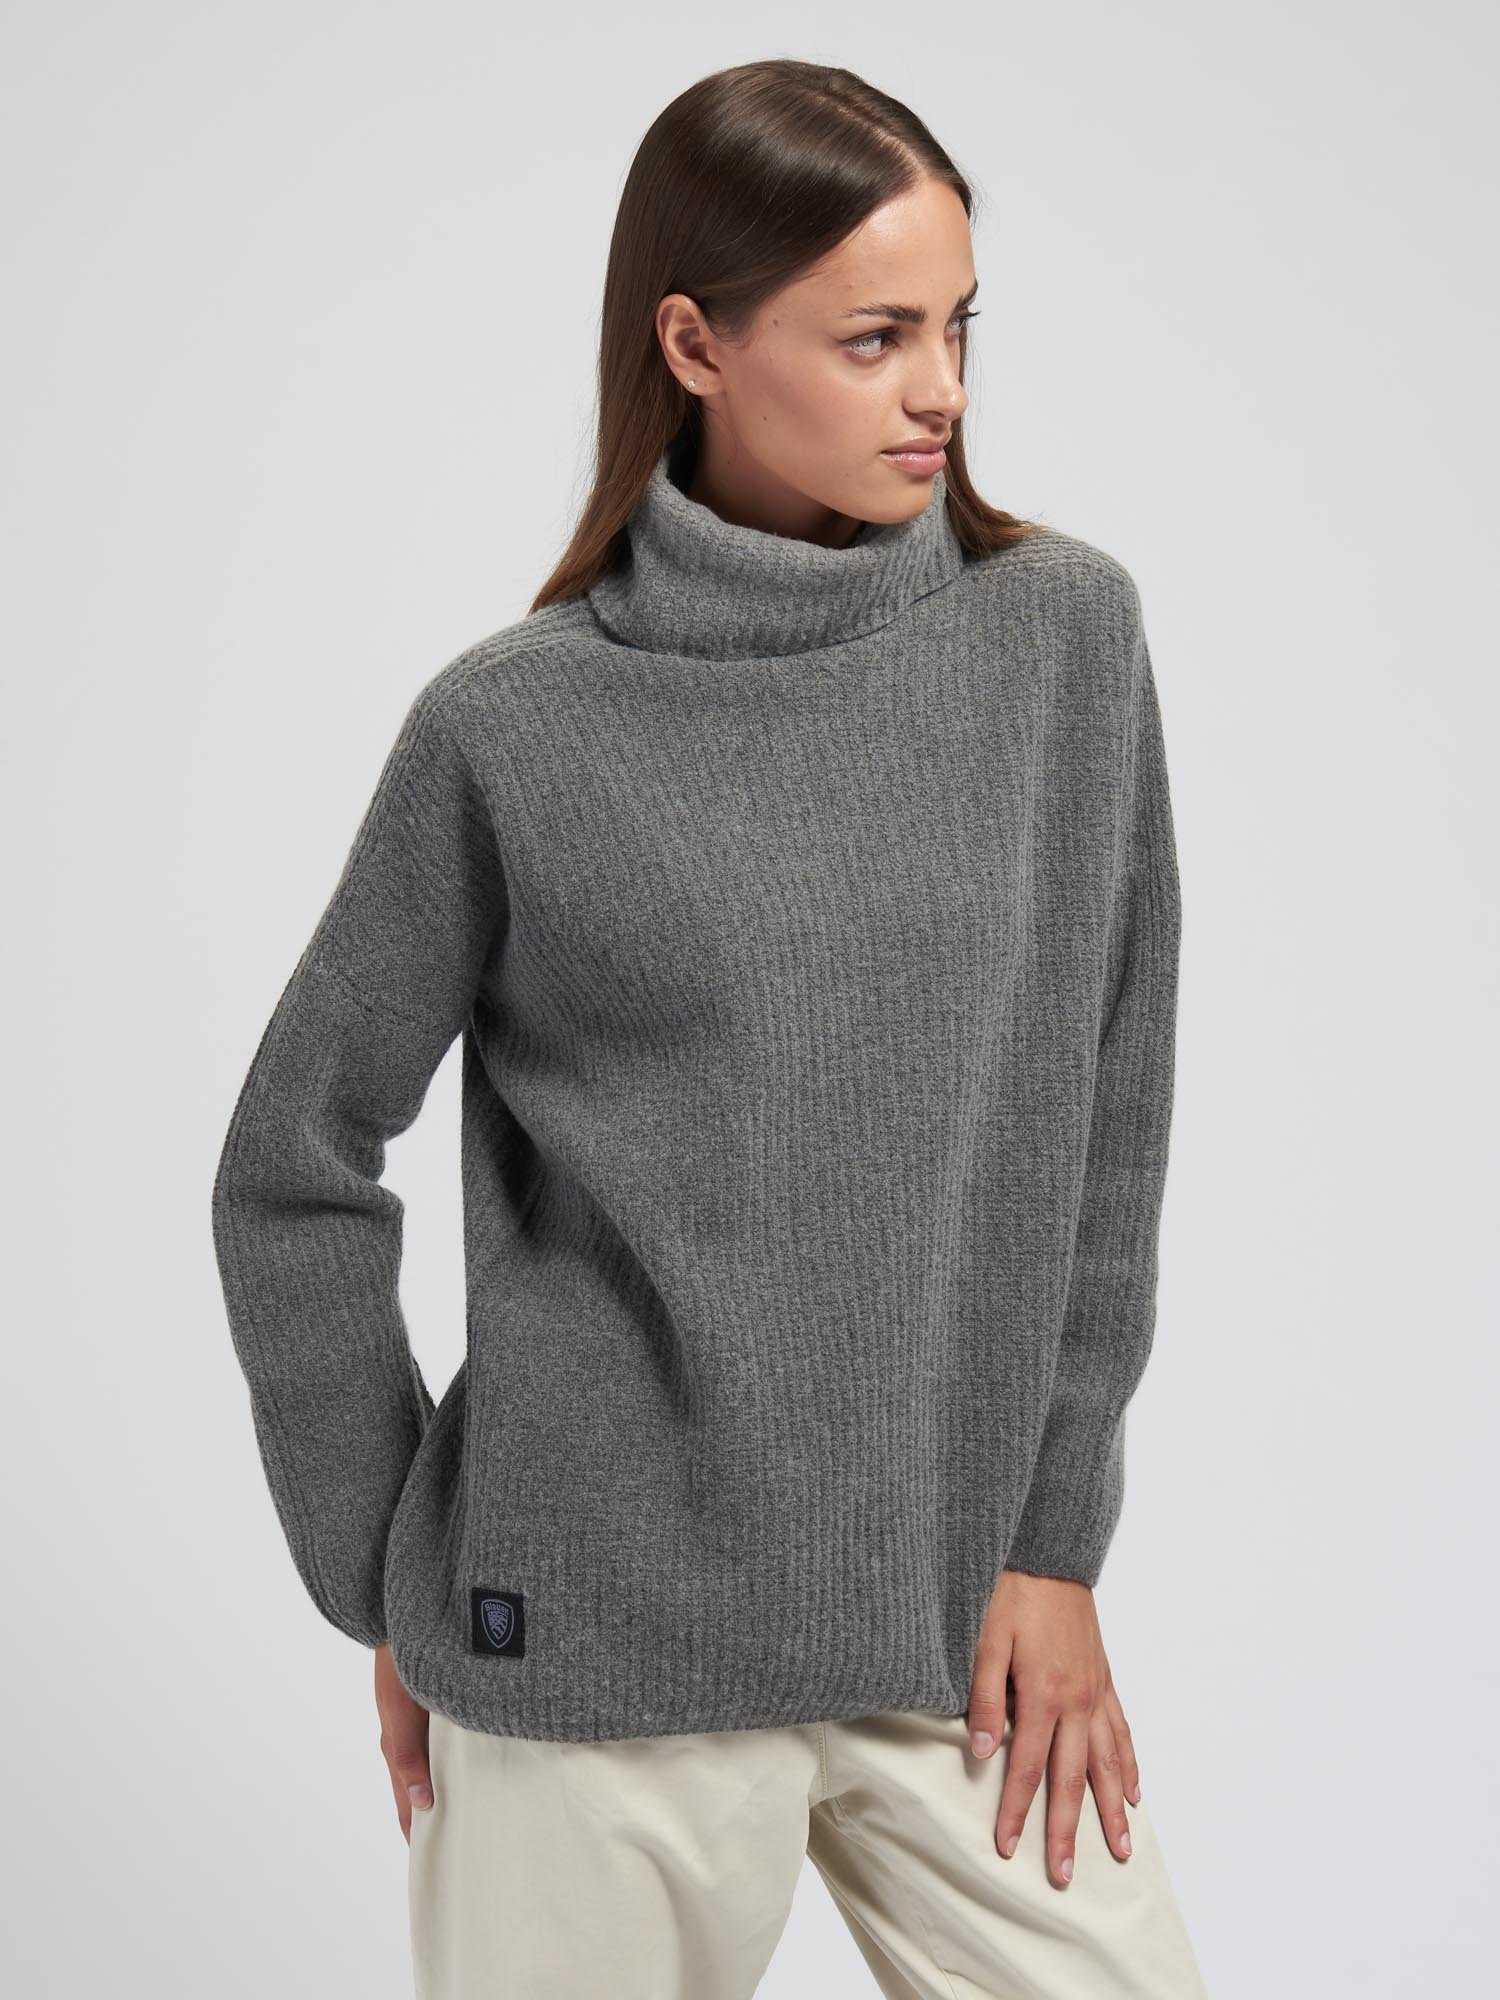 HIGH NECK SWEATER WITH CUFF - Blauer